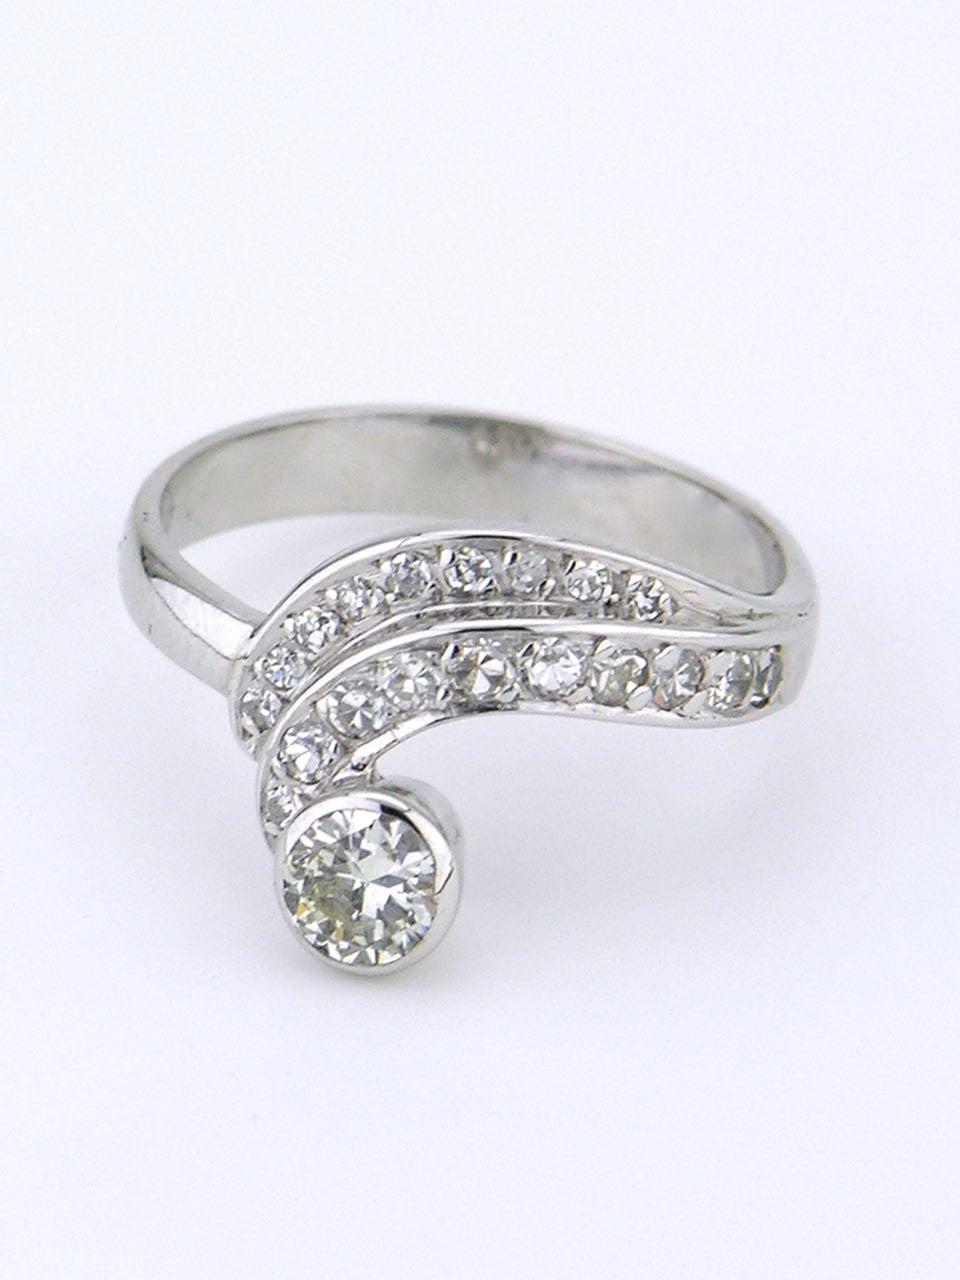 18k white gold and diamond swirl ring